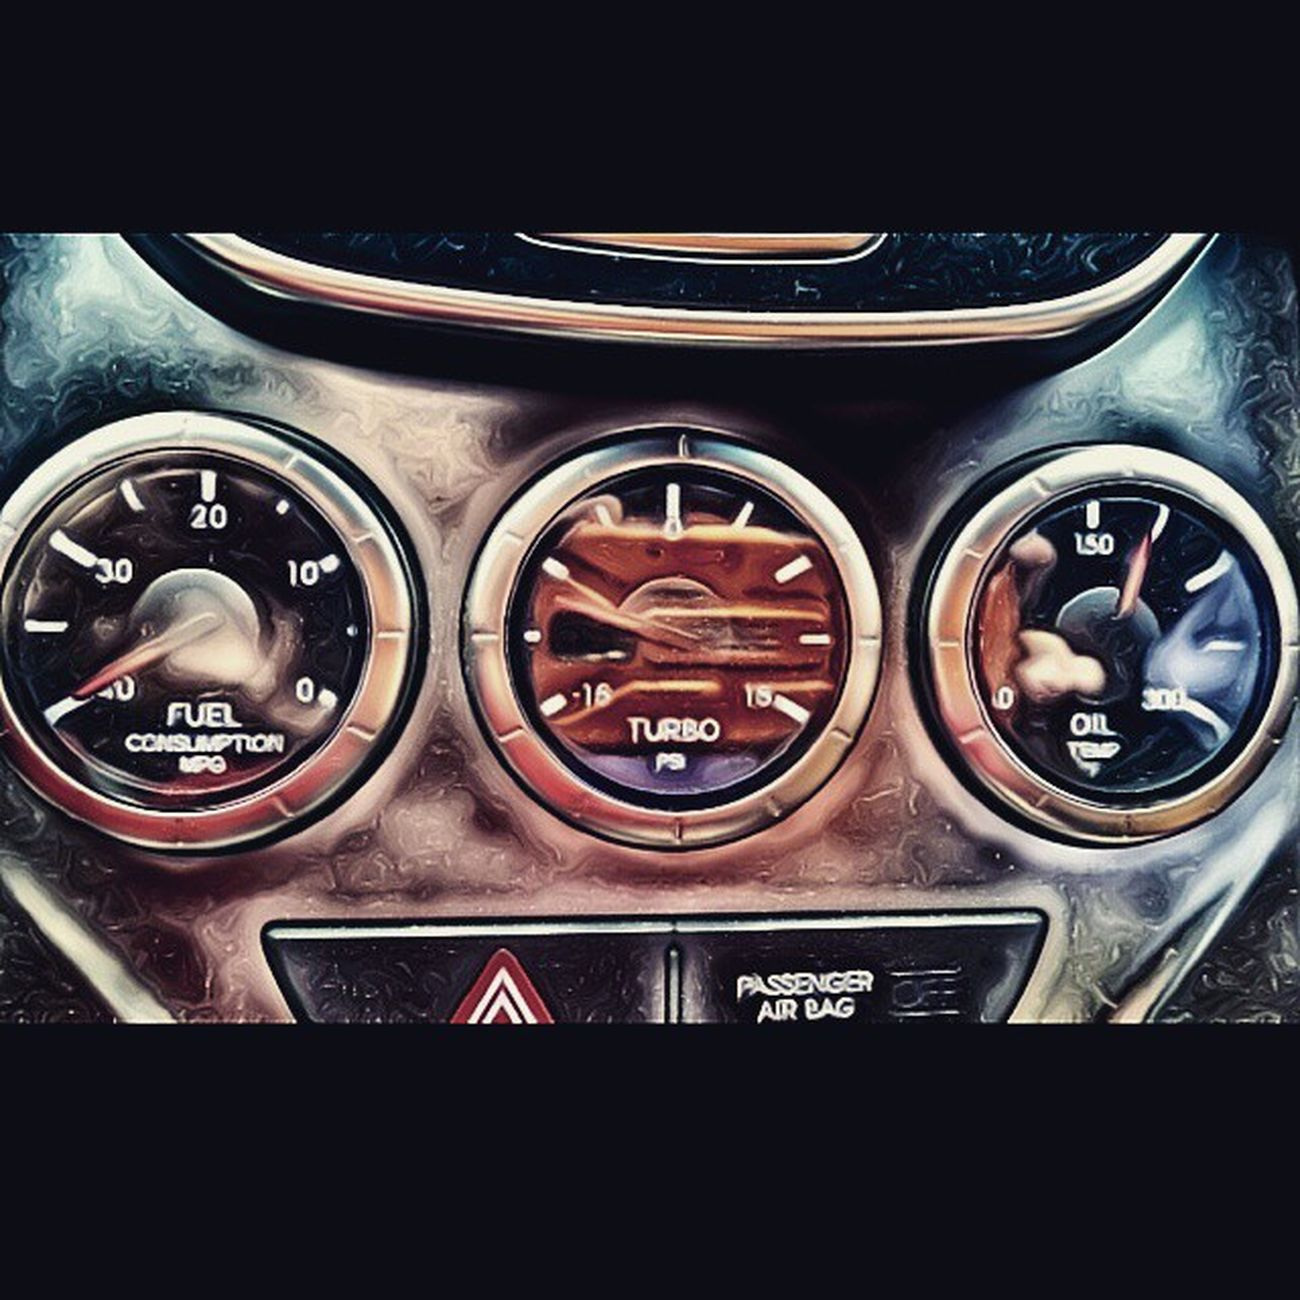 When life gives you gauges u gracefully accept! Hyundai Kdm Genny Genesis genesiscoupe boosted becauseracecar turbo boooyahhhh